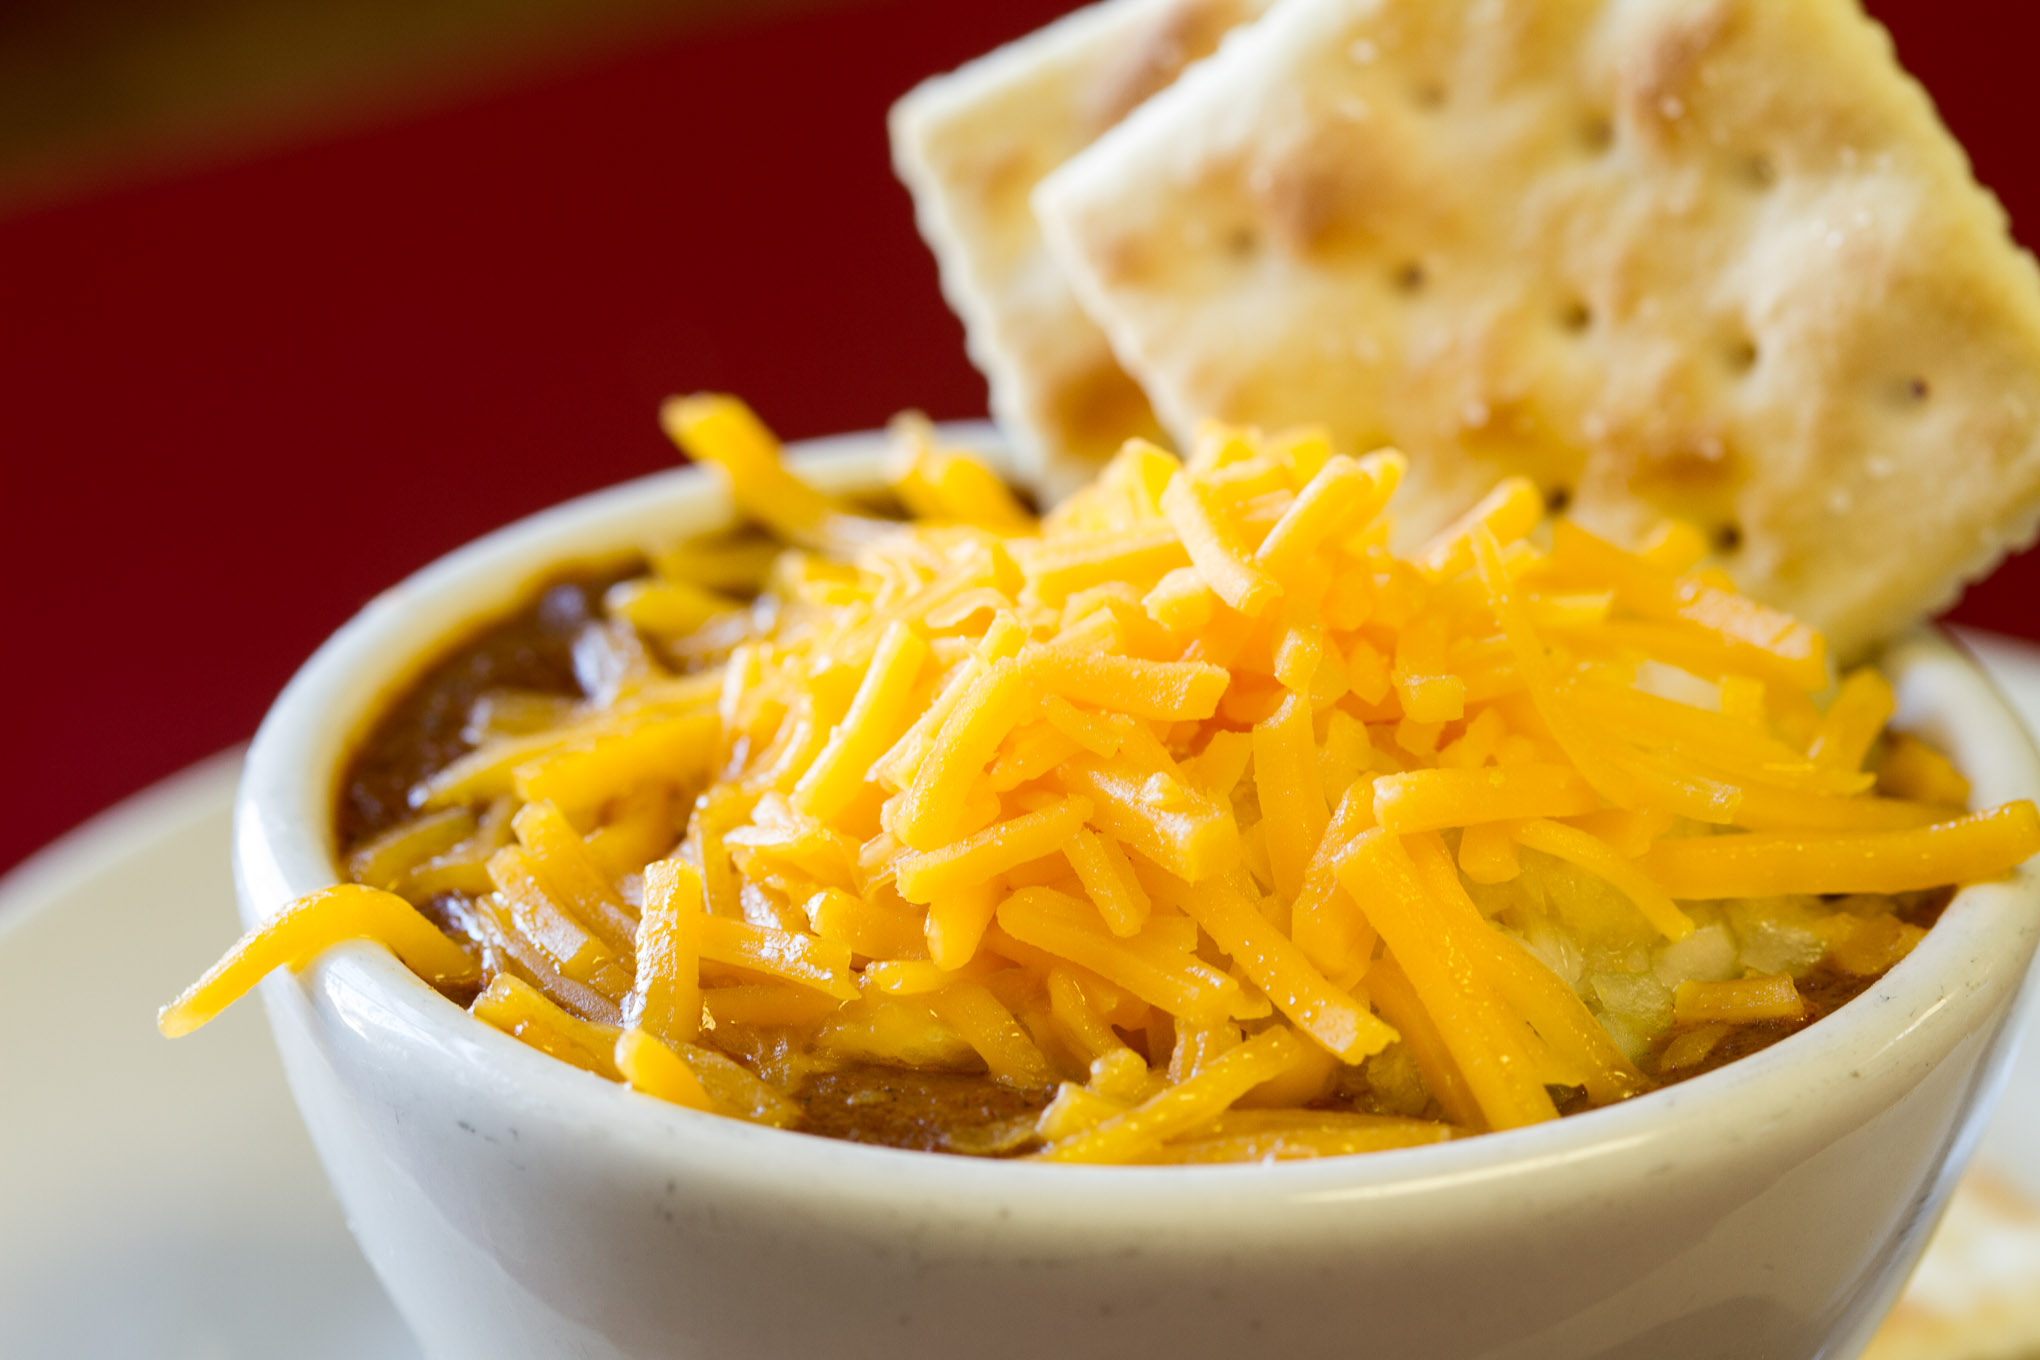 500 Free Cups of Dolores Chili To Be Given Away at Philippe's Jan. 28